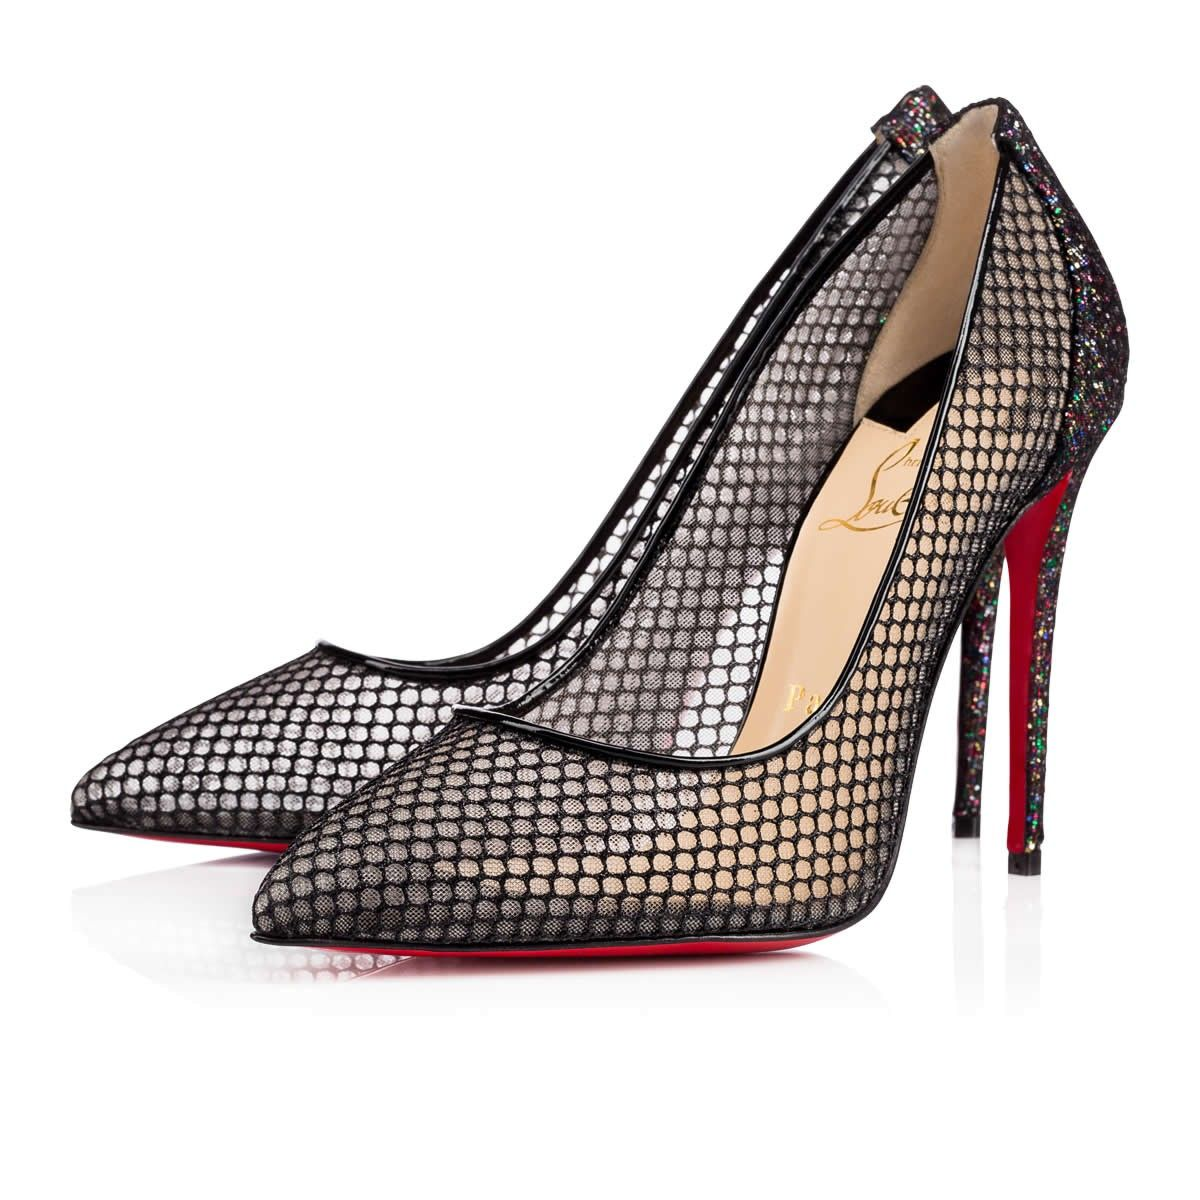 Christian Louboutin Women Pumps : Discover the latest Women Pumps  collection available at Christian Louboutin Online Boutique.